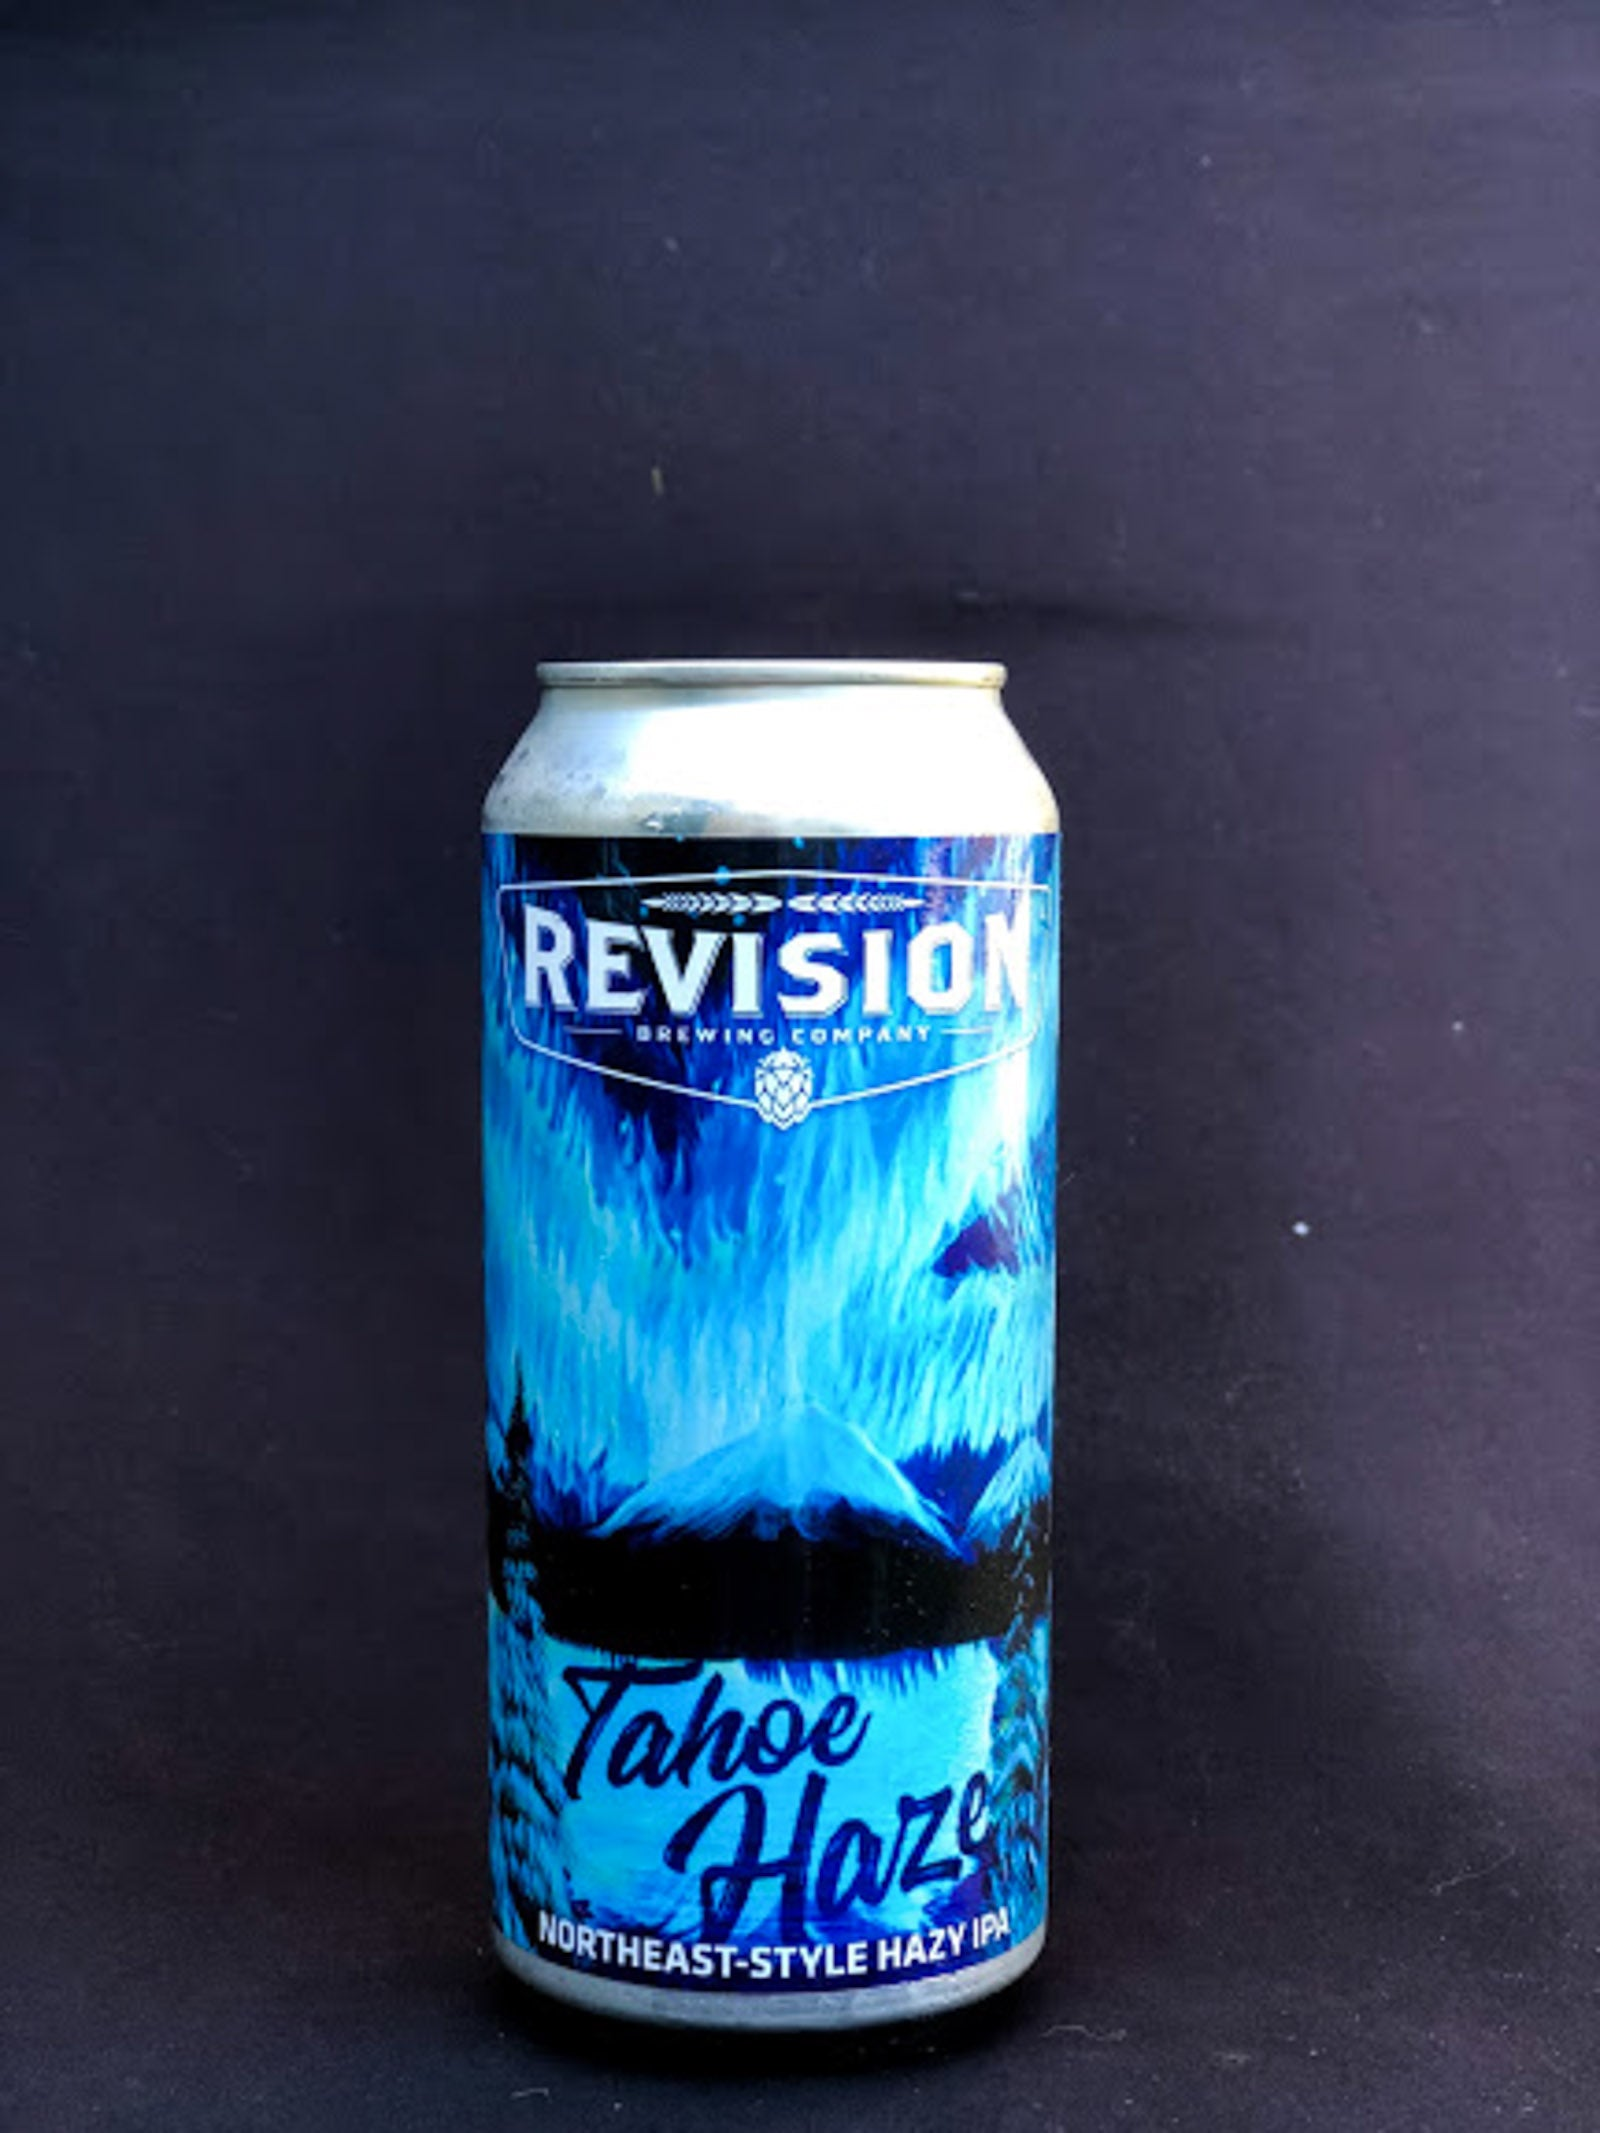 Revision Brewing Tahoe Haze NE Hazy IPA